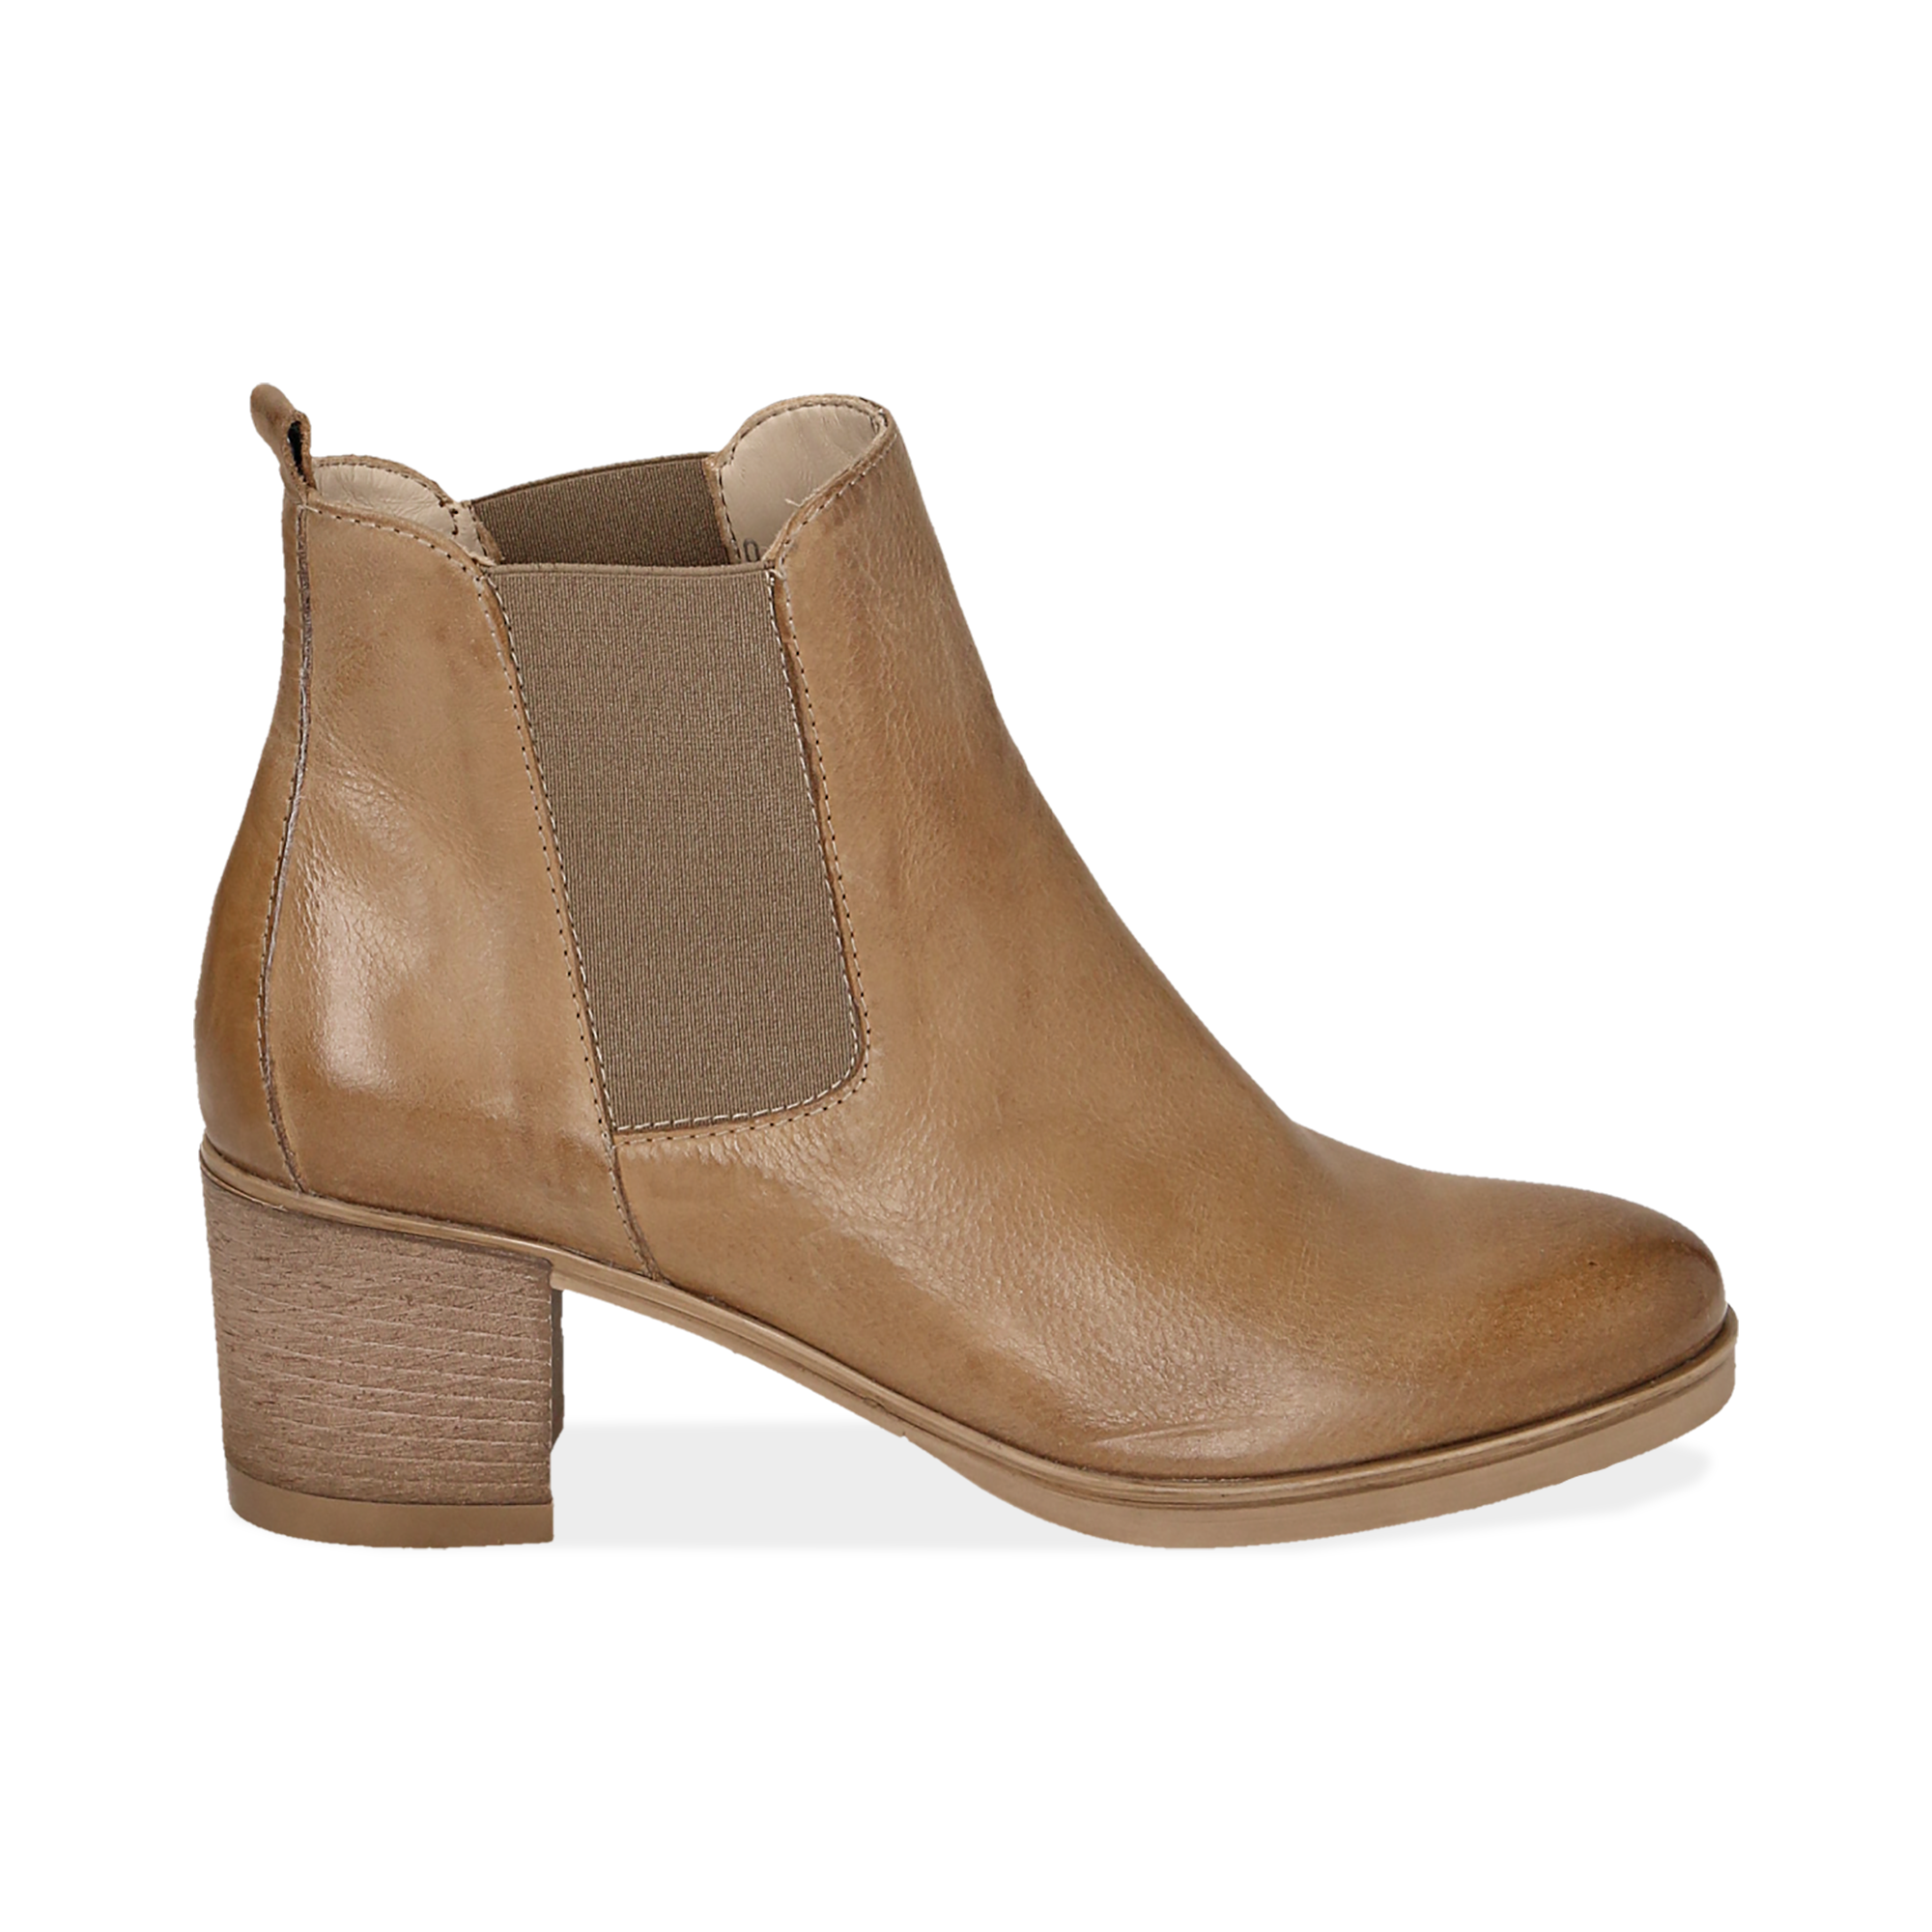 Chelsea boots cuoio in pelle, tacco 6 cm